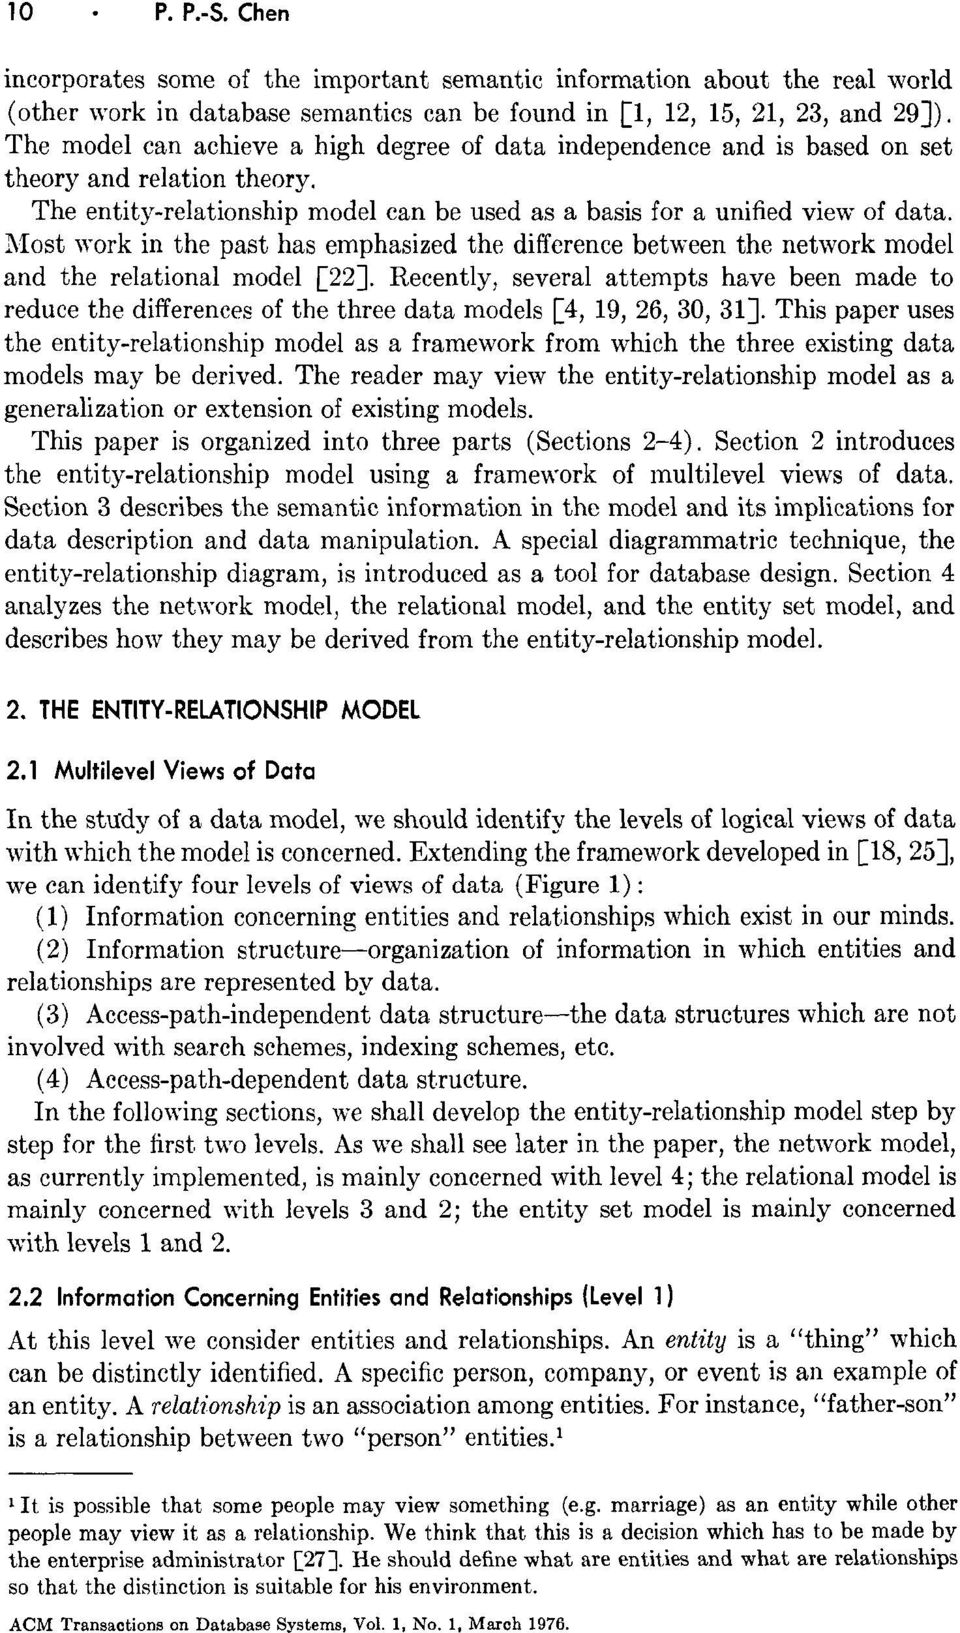 Most vork in the past has emphasized the difference between the network model and the relational model [22].